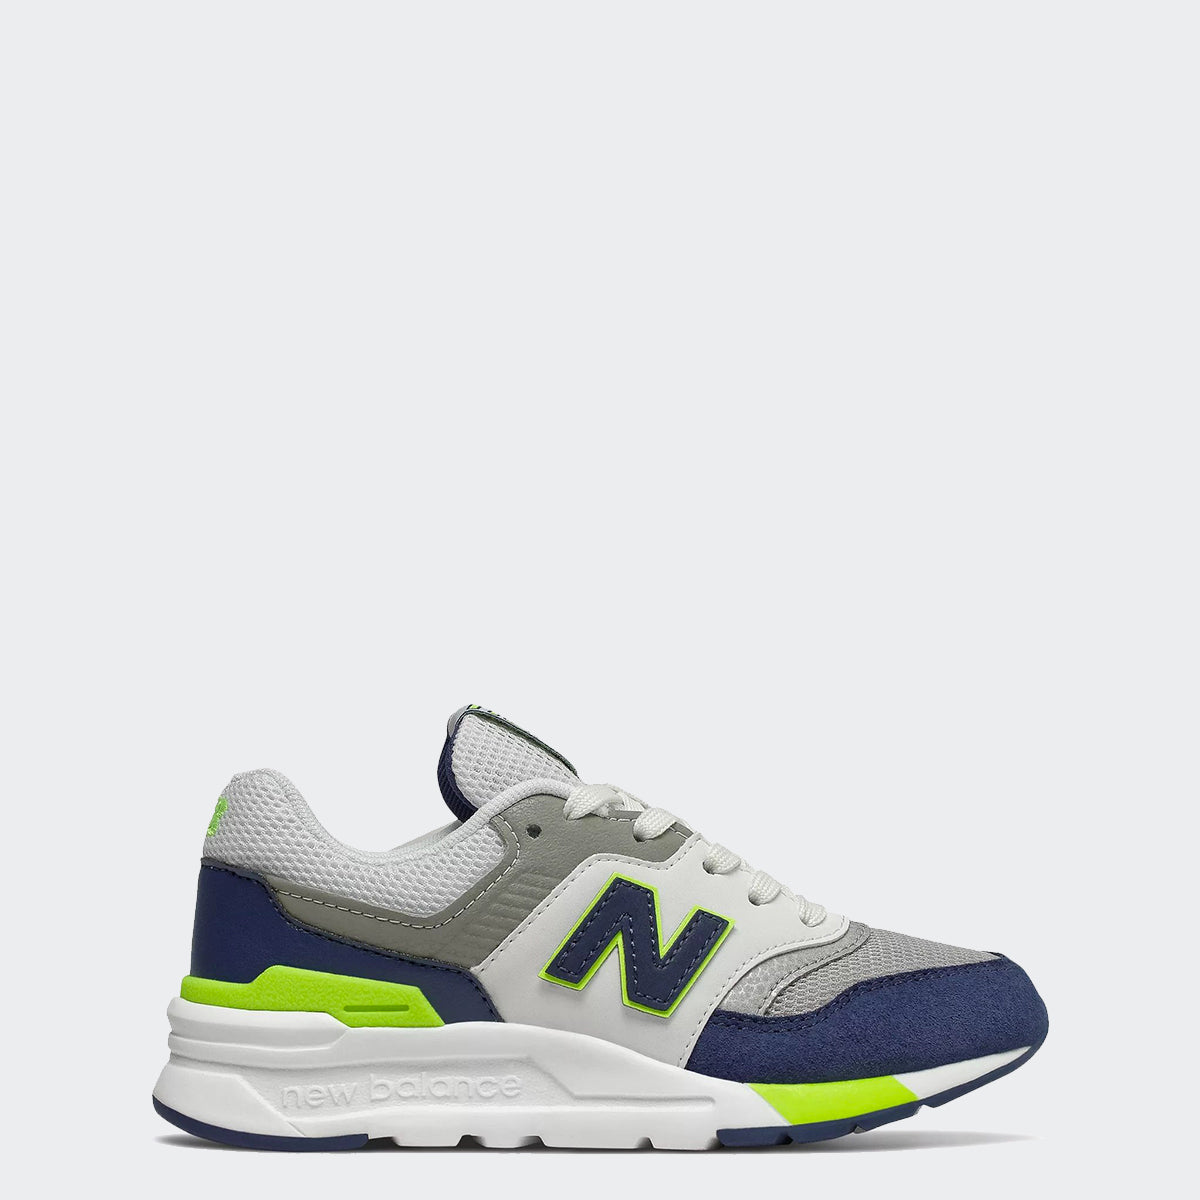 59eef975a1c9 New Balance 997 Shoes Moroccan Tile GR997HCJ | Chicago City Sports